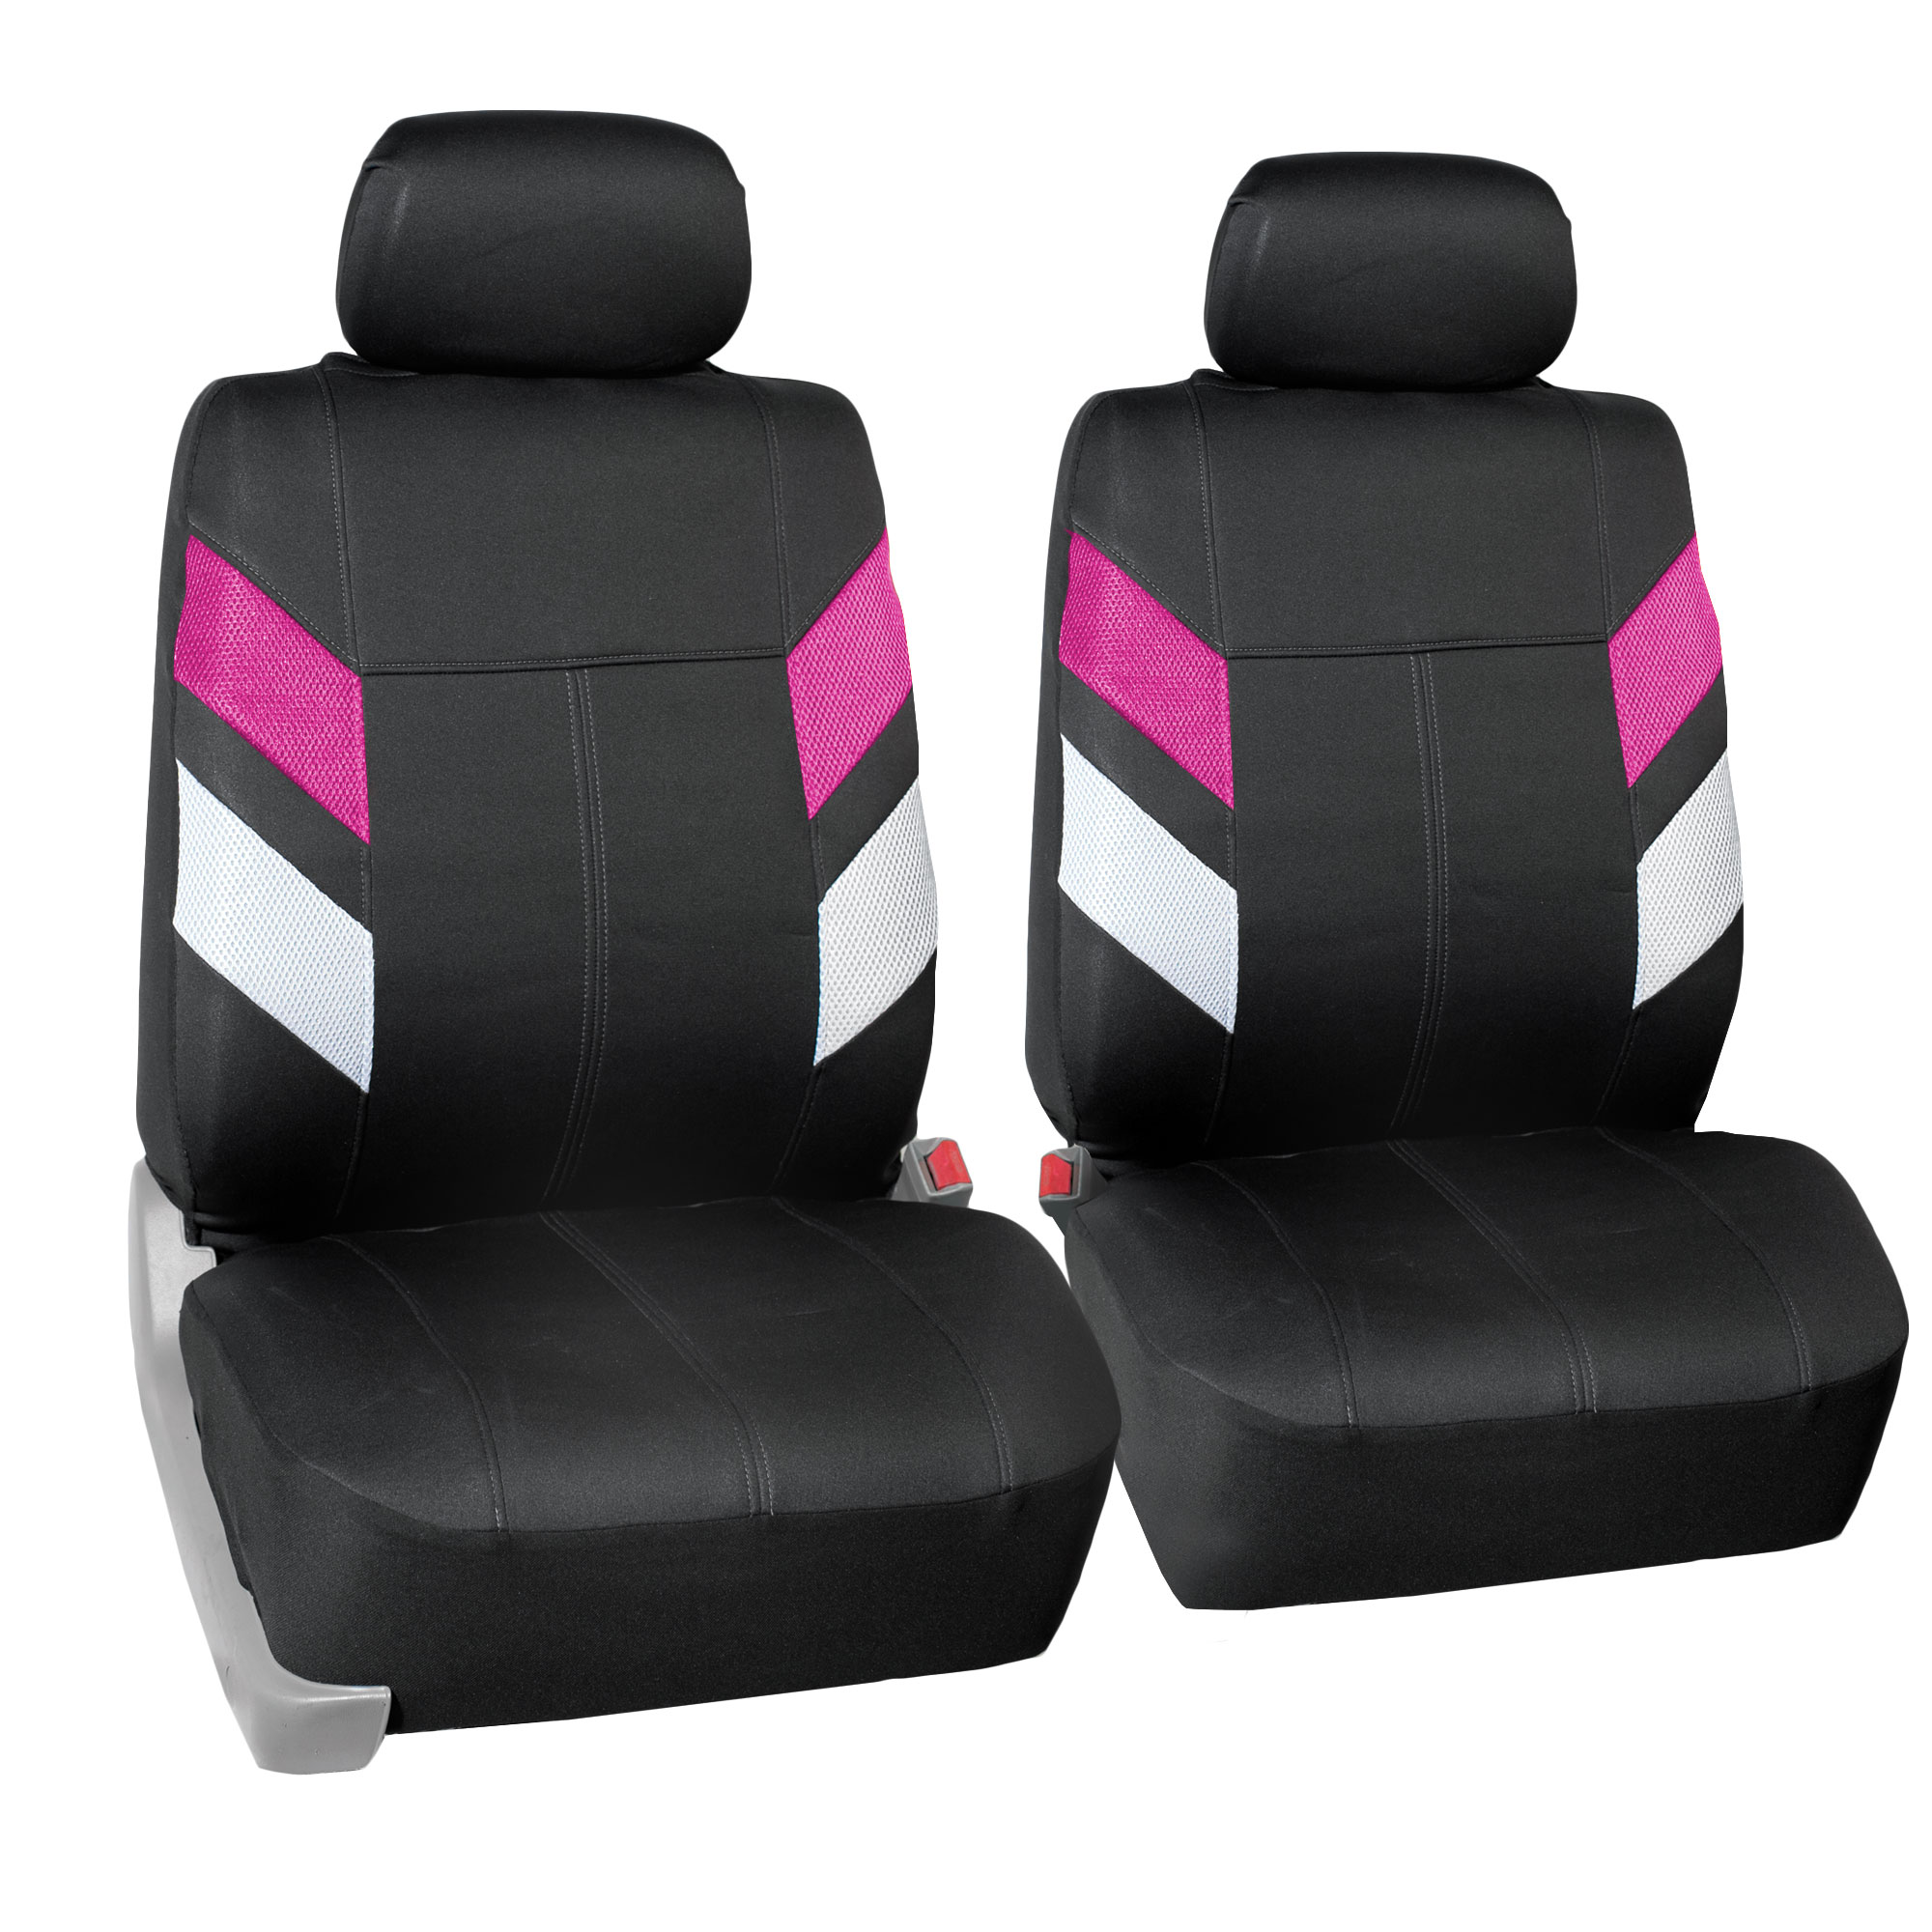 Neoprene Car Seat Covers For Auto Car SUV Van Front Bucket